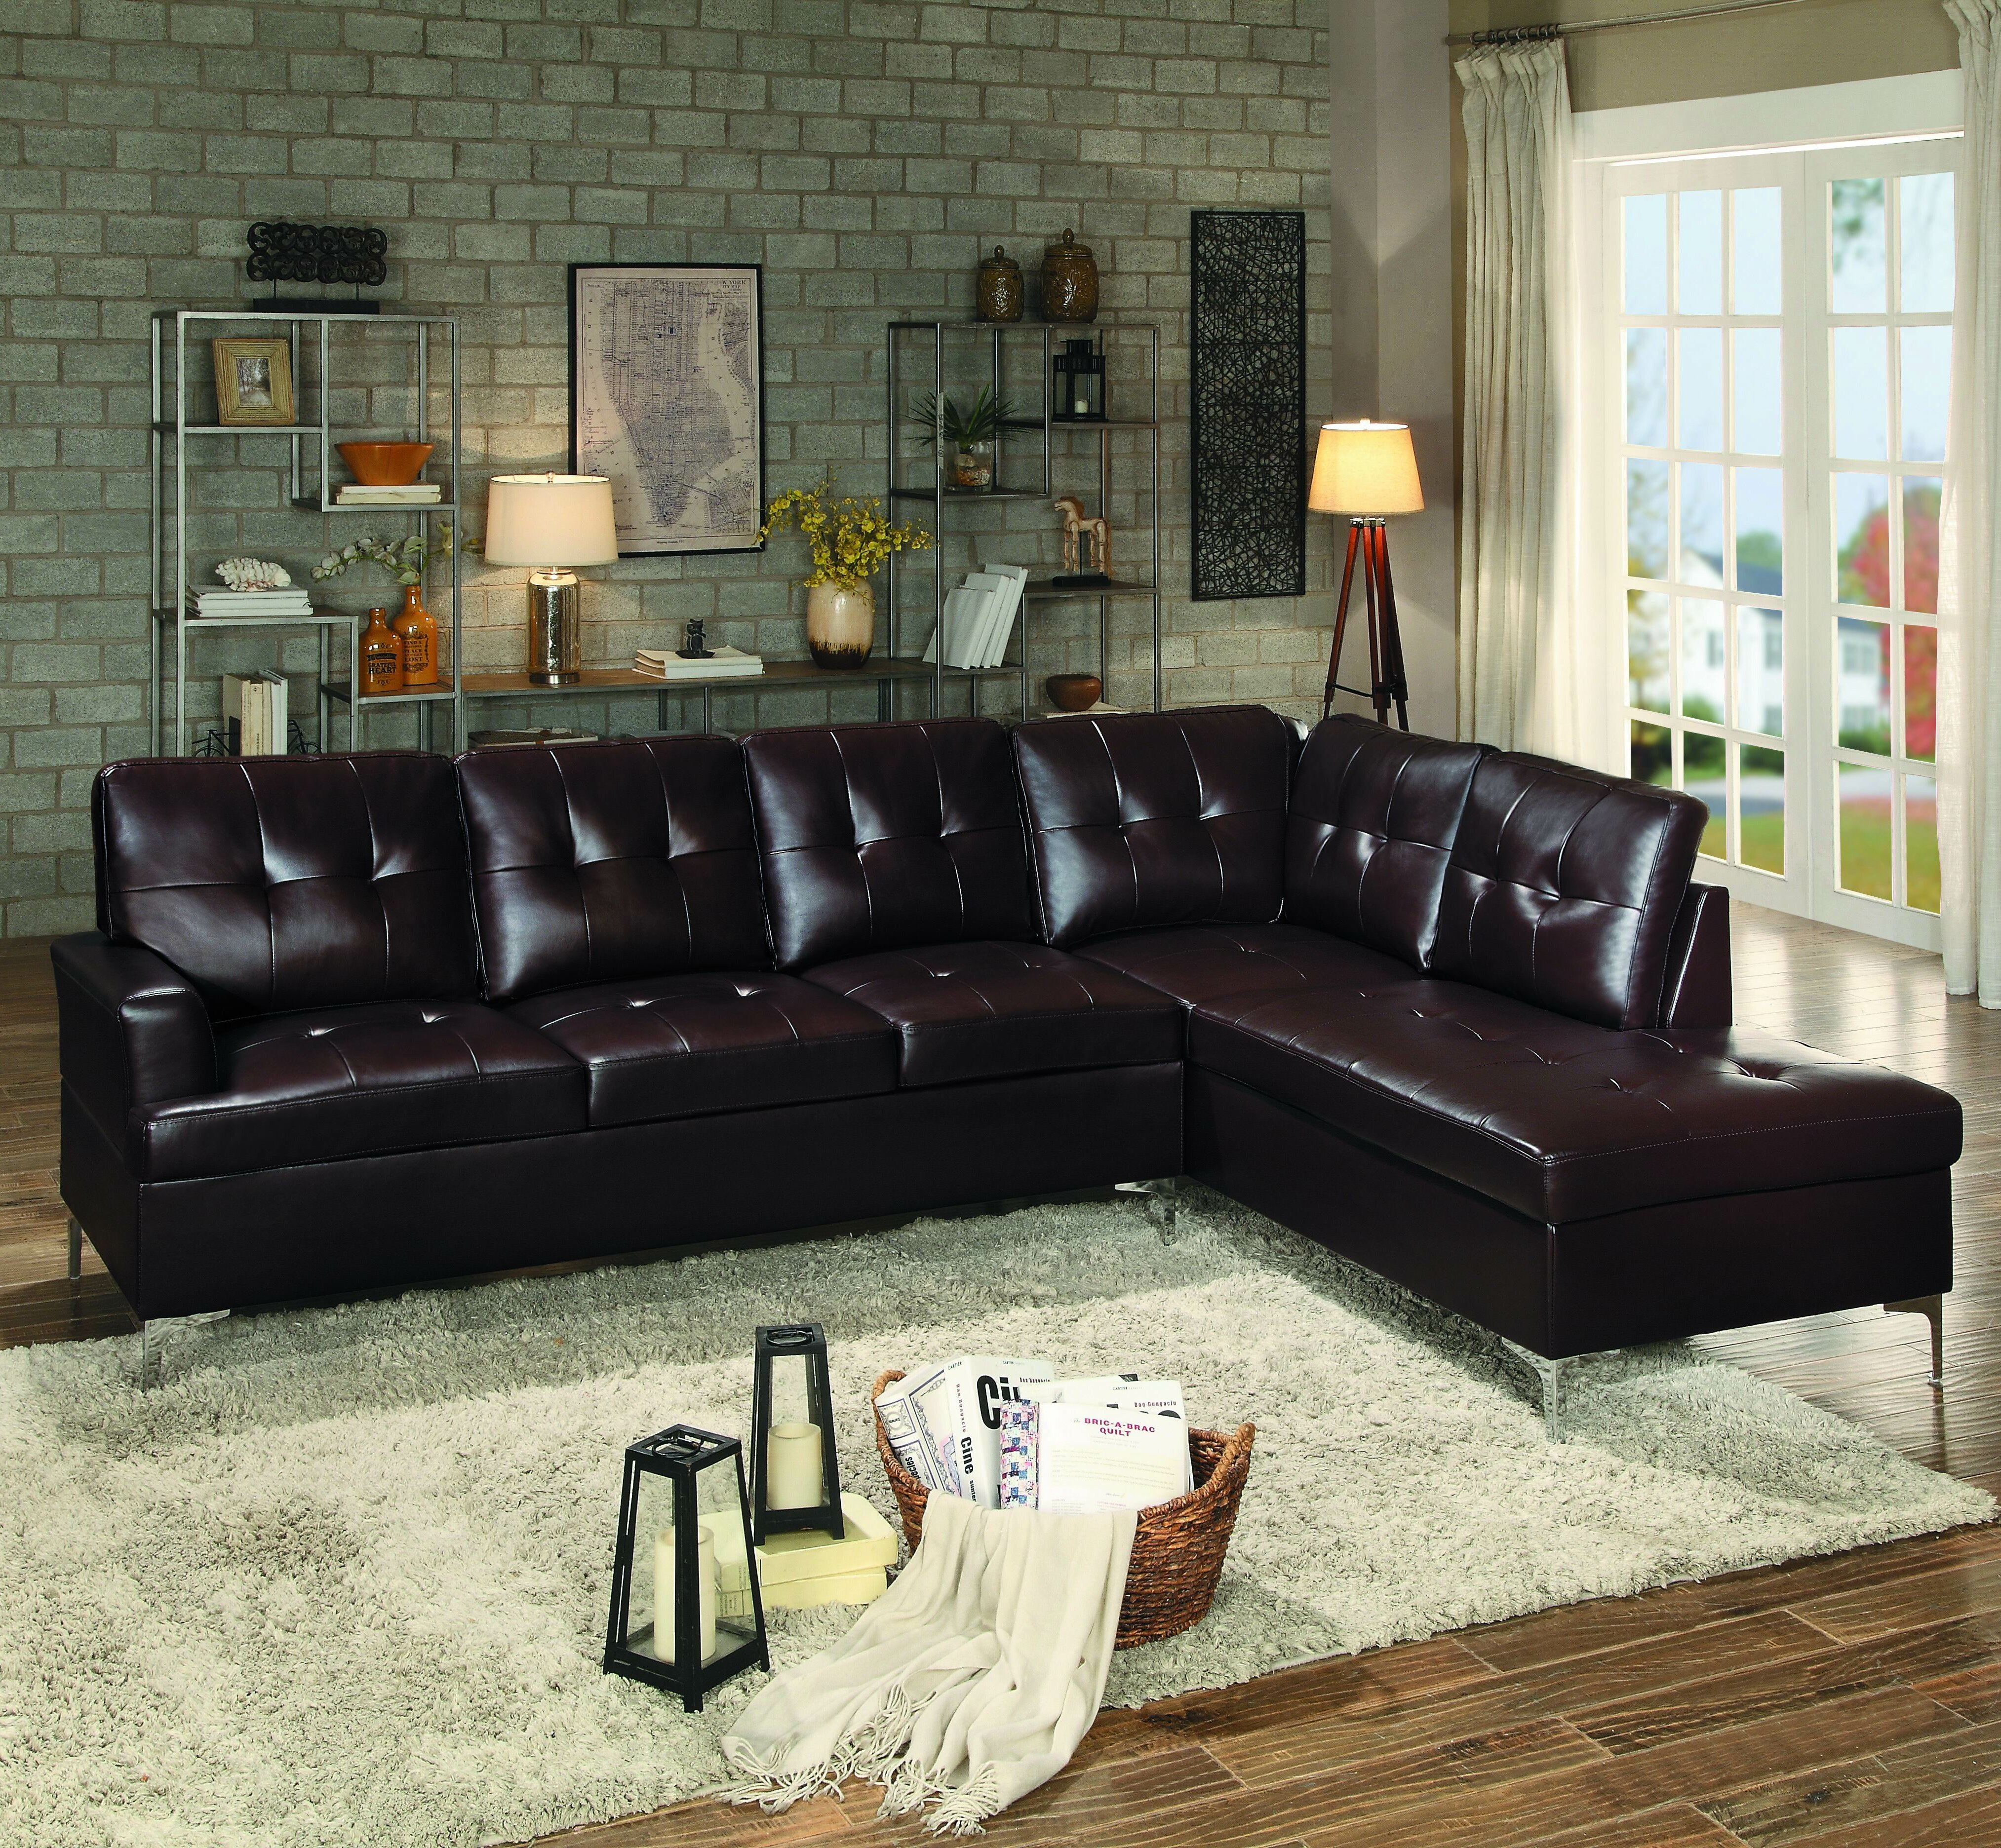 Ivy bronx aura sectional reviews wayfair